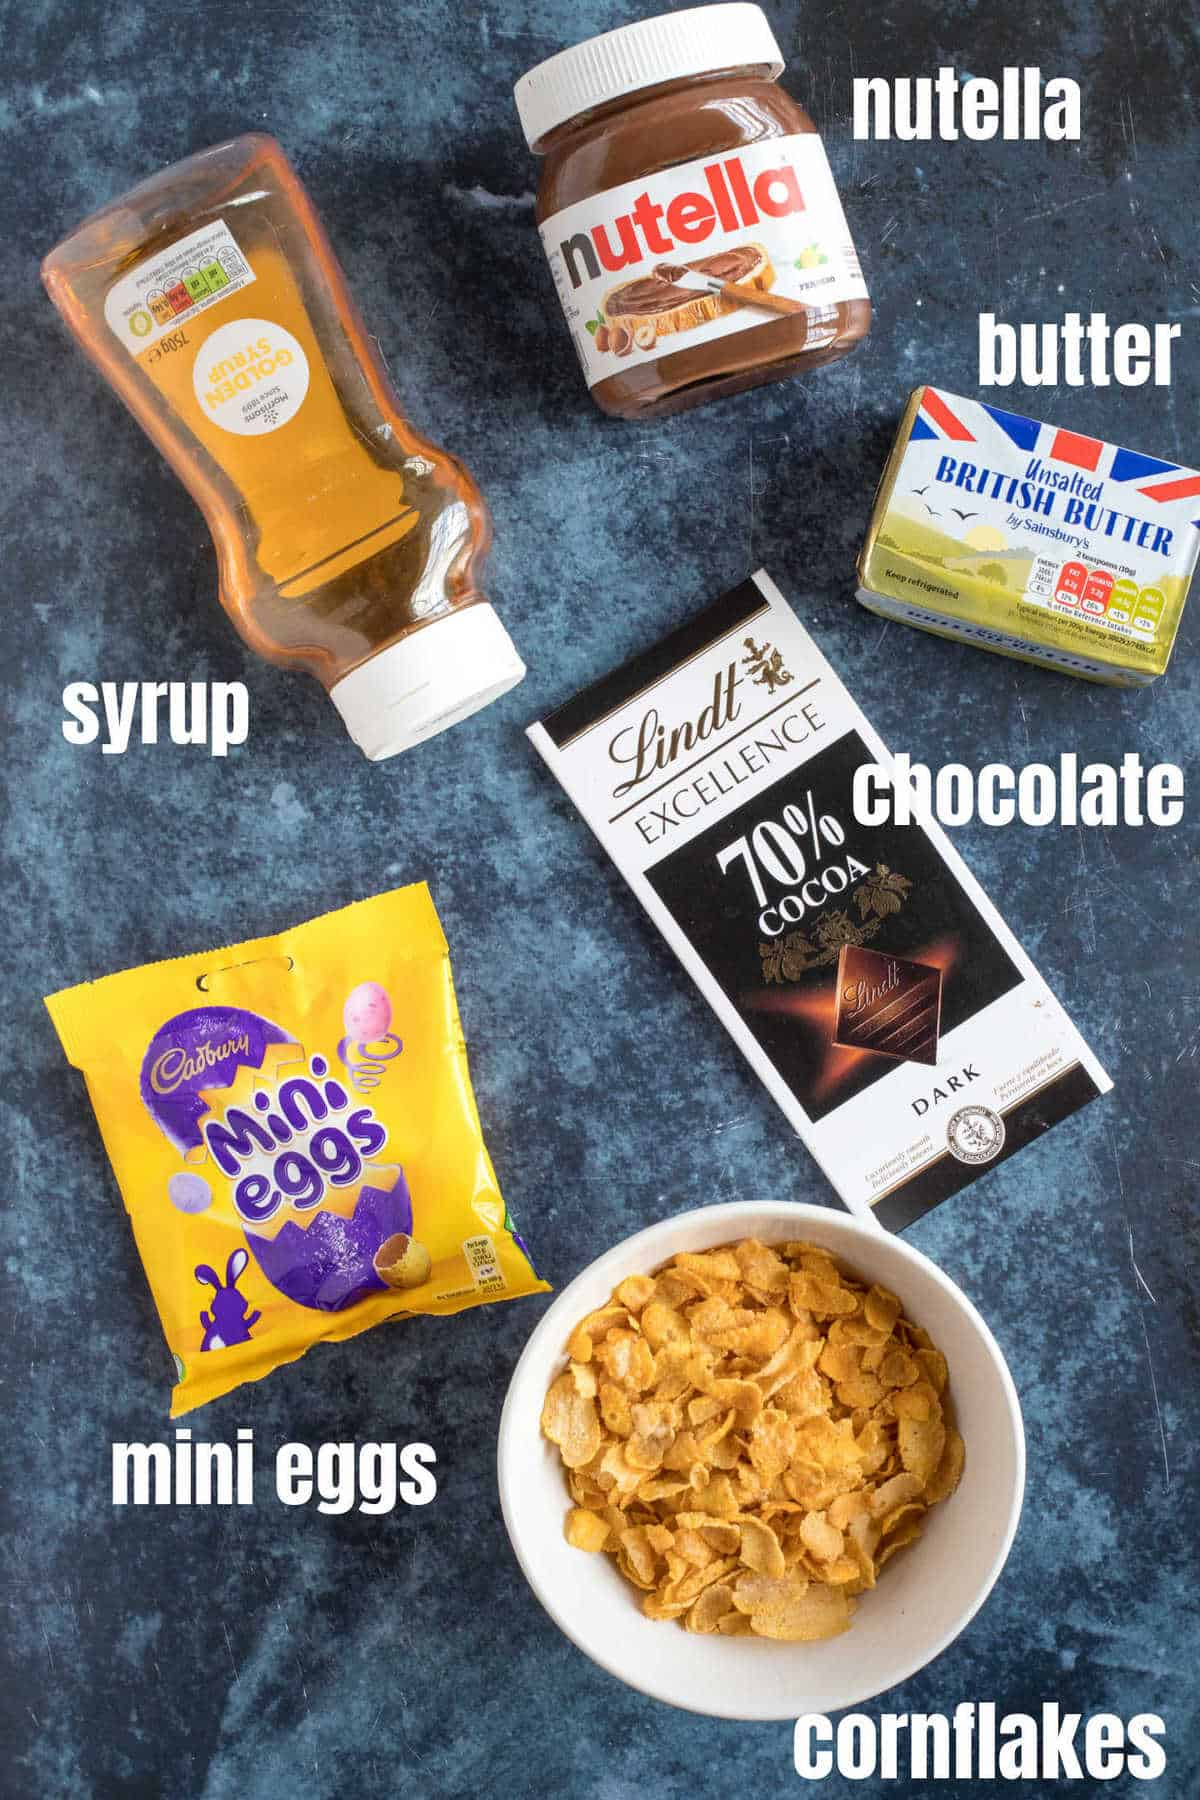 Ingredients for chocolate cornflake cakes.